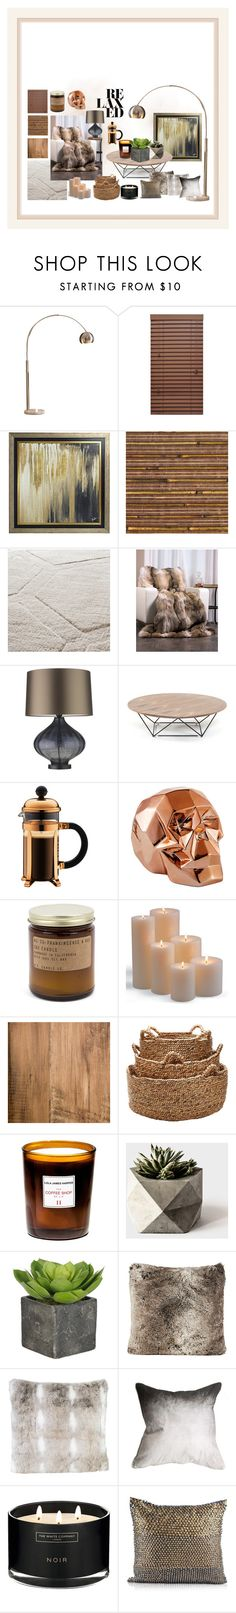 """""""Copper Warmth"""" by lucyfbarnes ❤ liked on Polyvore featuring interior, interiors, interior design, home, home decor, interior decorating, Ink & Ivy, Universal Lighting and Decor, Zoffany and Bodum"""